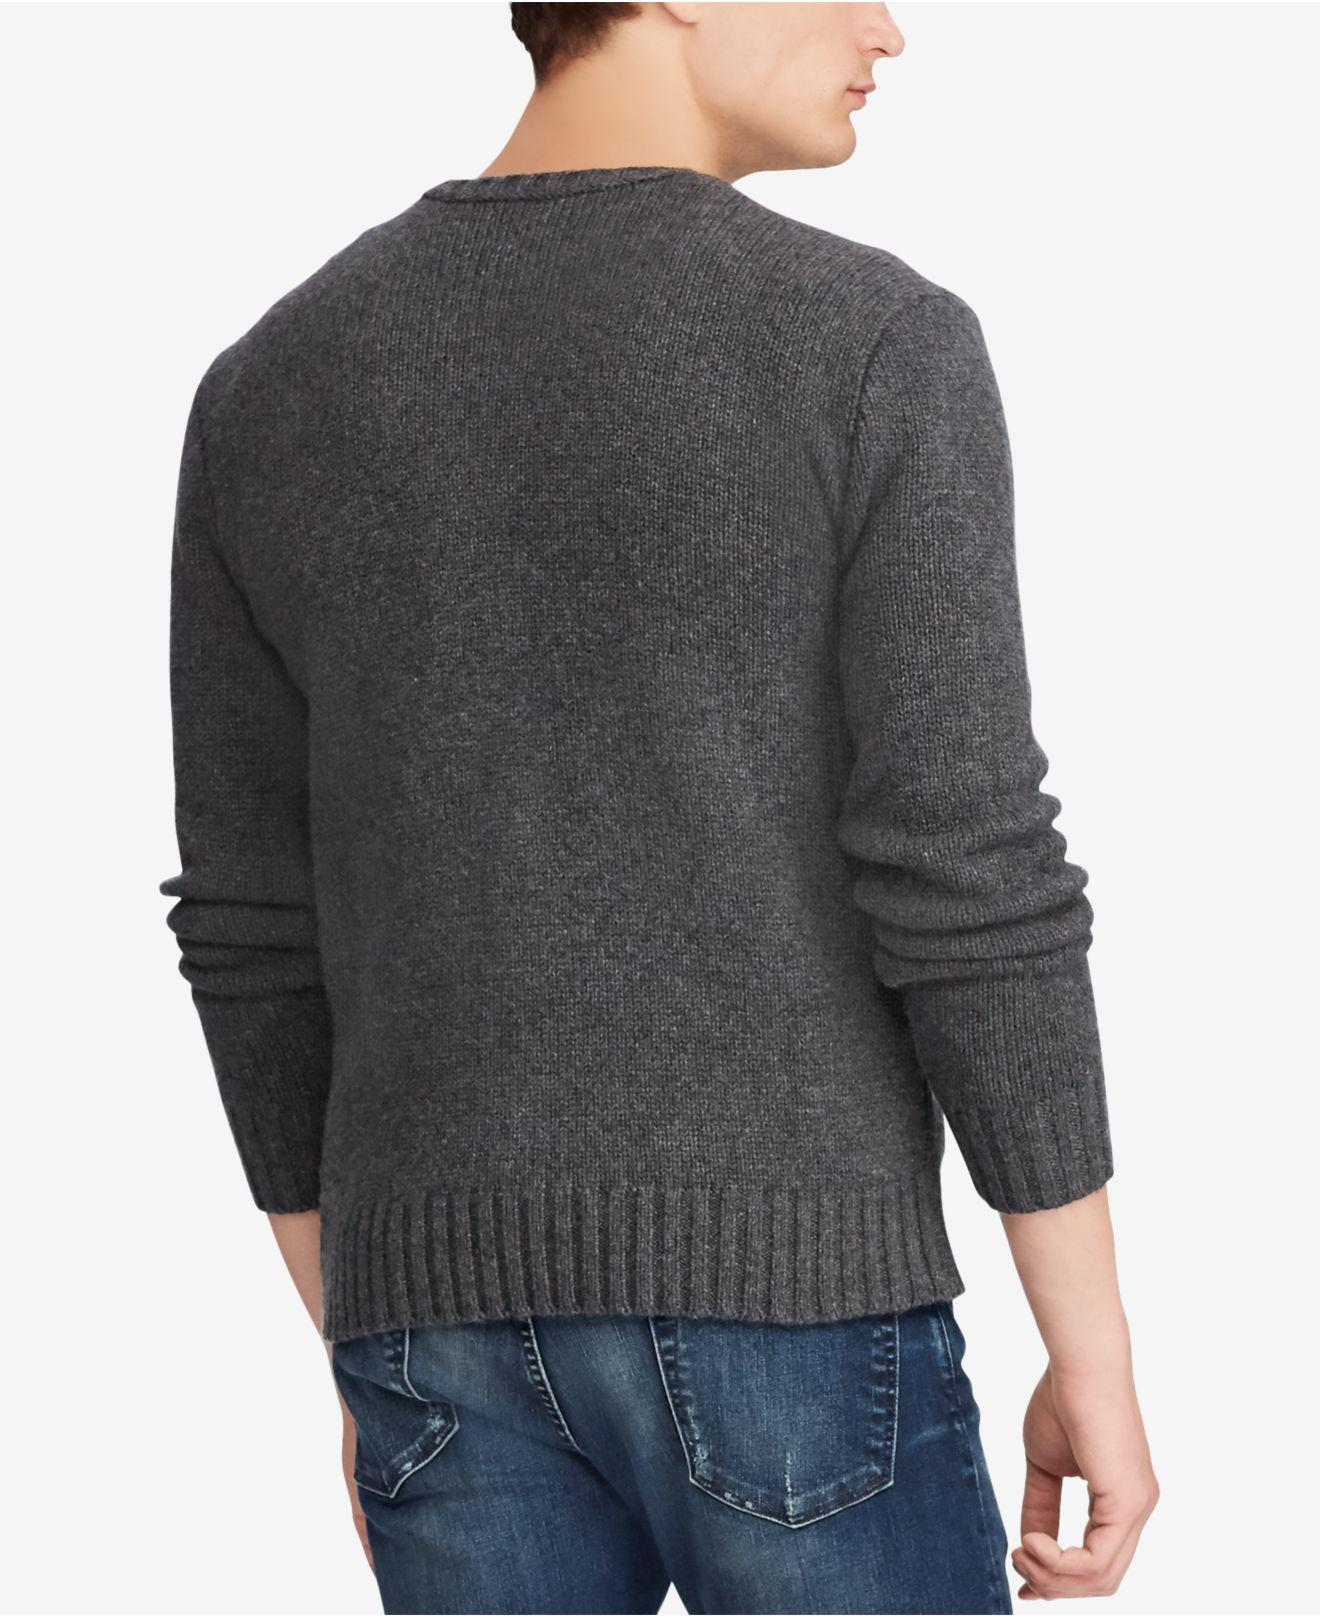 485dec4ee ... cheap lyst polo ralph lauren cashmere sweater in gray for men 9924b  accfa